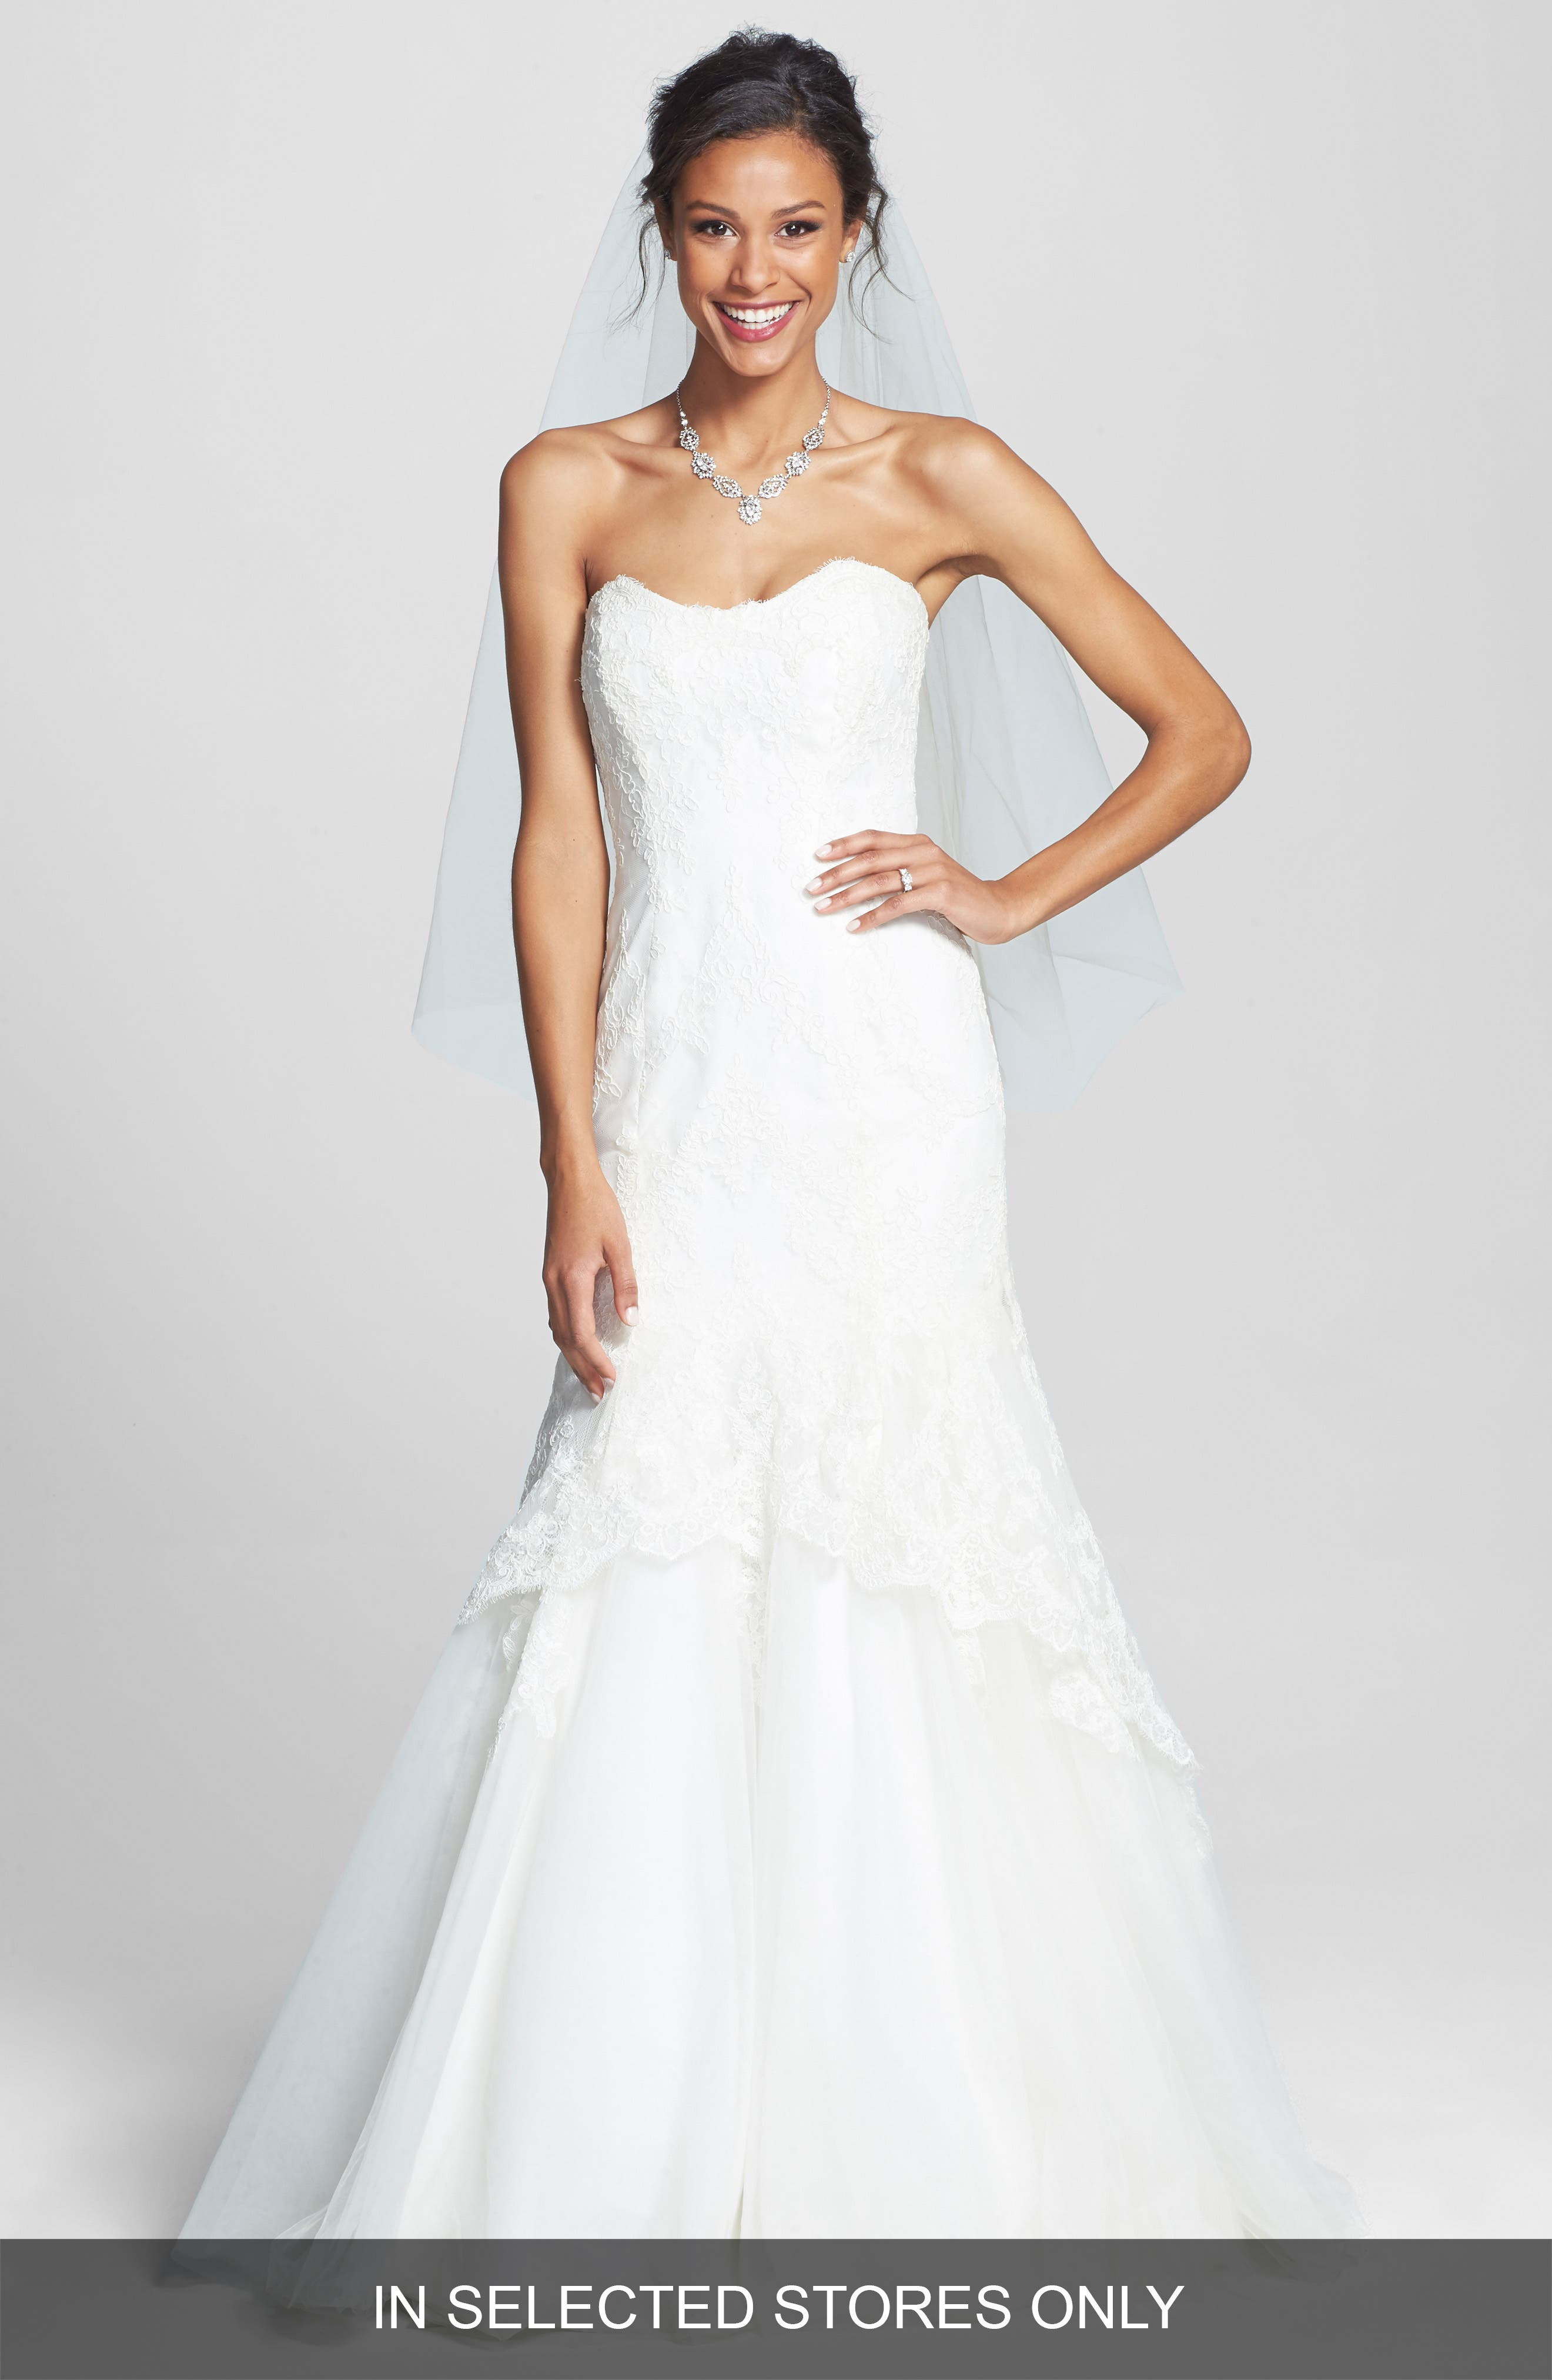 Alternate Image 1 Selected - BLISS Monique Lhuillier Lace Overlay Tulle Trumpet Wedding Dress